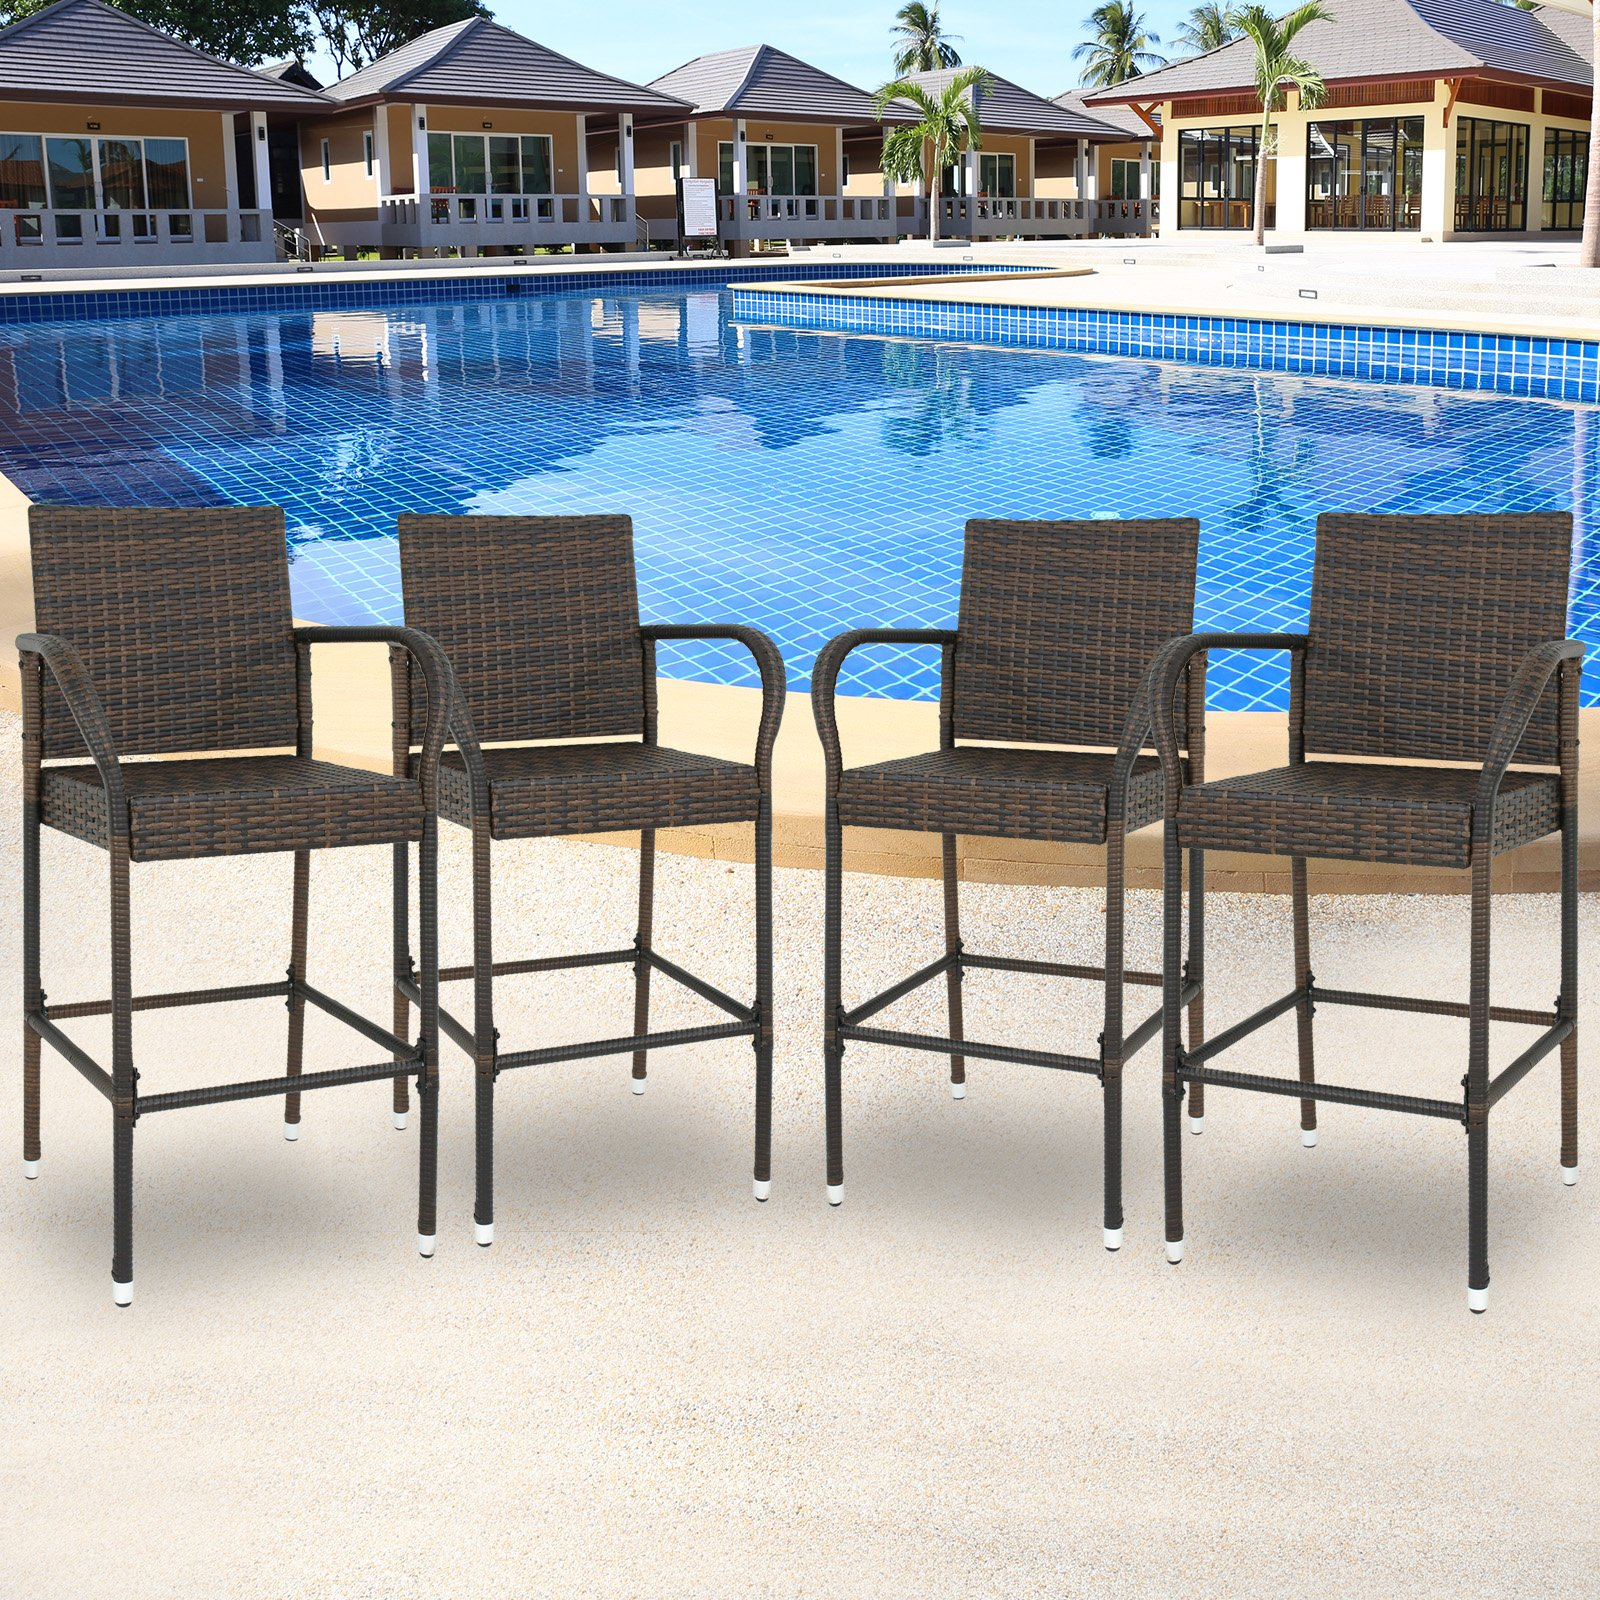 SUPER DEAL Wicker Bar Stool Outdoor Backyard Rattan Chair Patio Furniture Chair w/Iron Frame, Armrest and Footrest, Set of 4 by SUPER DEAL (Image #1)